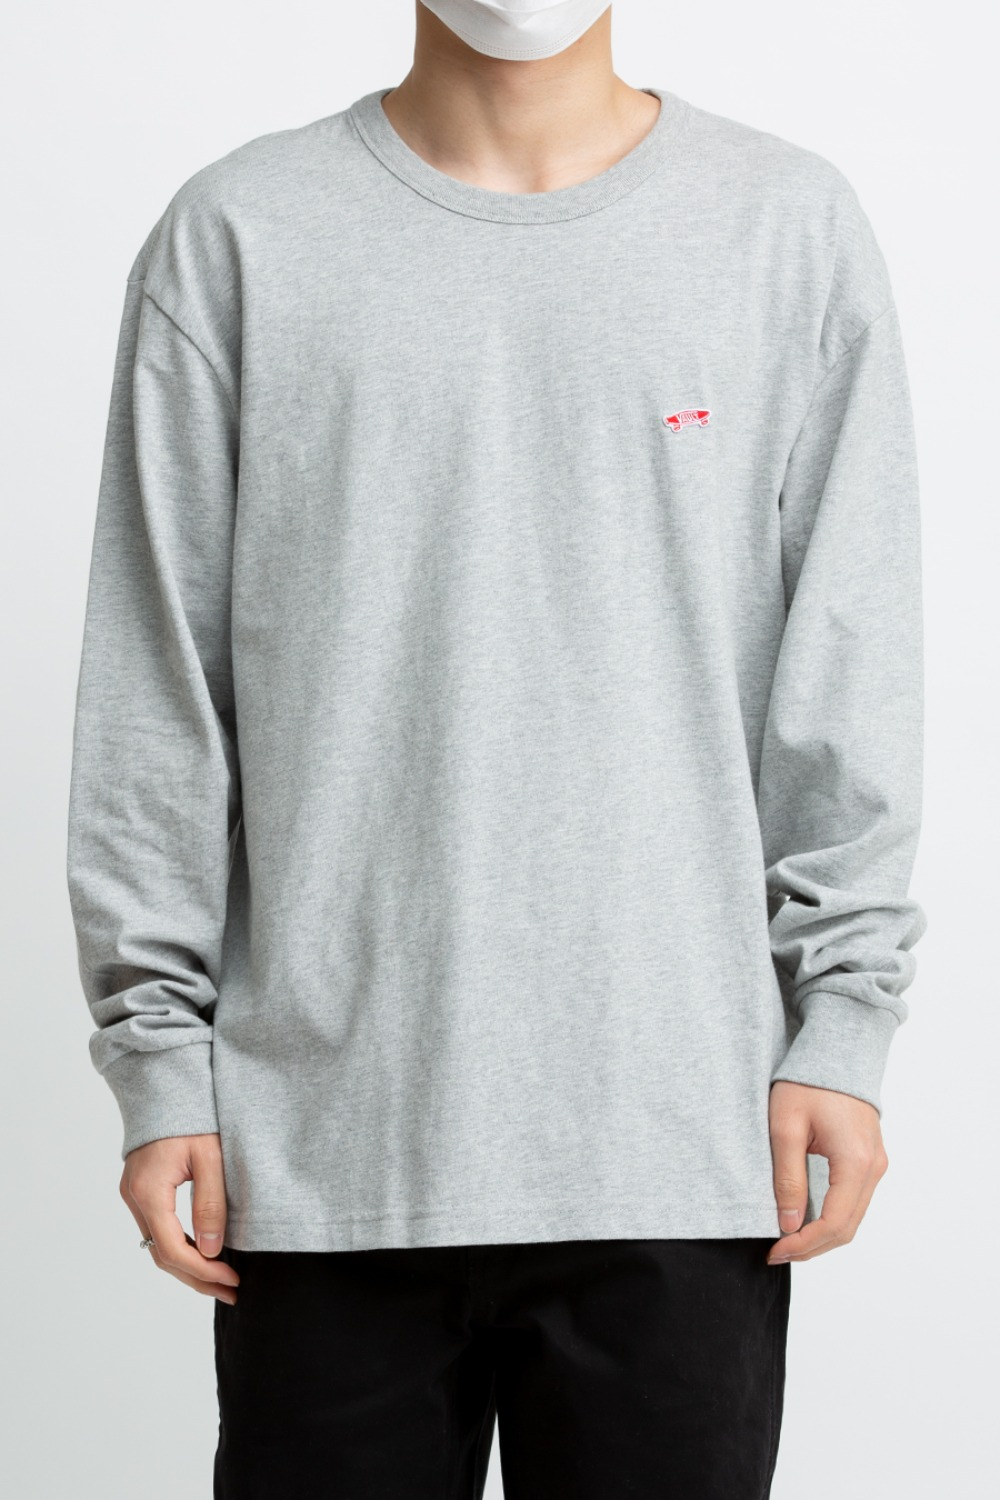 VAULT OG LS T-SHIRT GREY